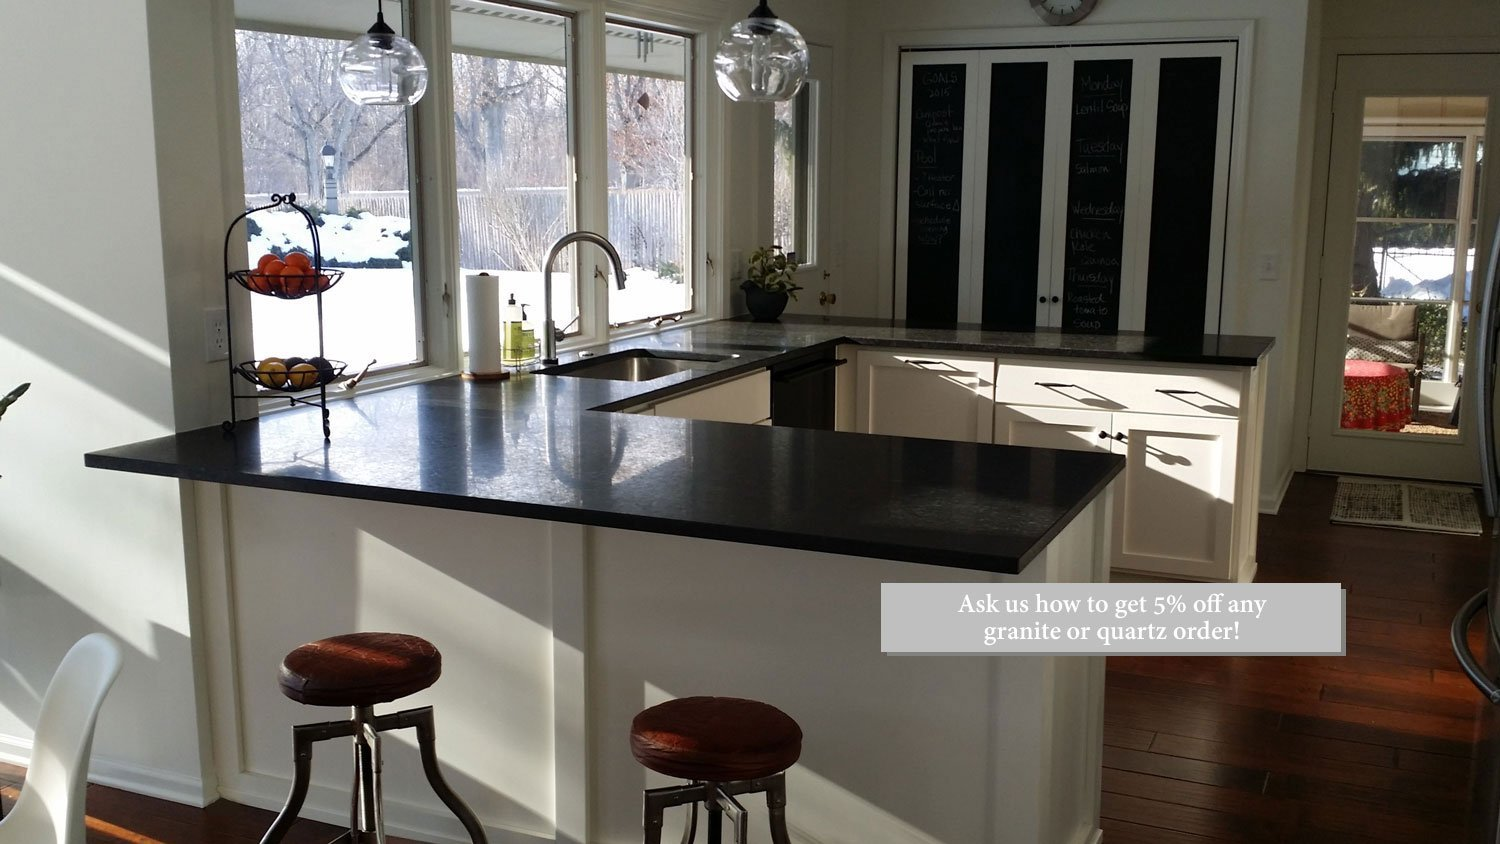 new countertops, kitchen cabinets